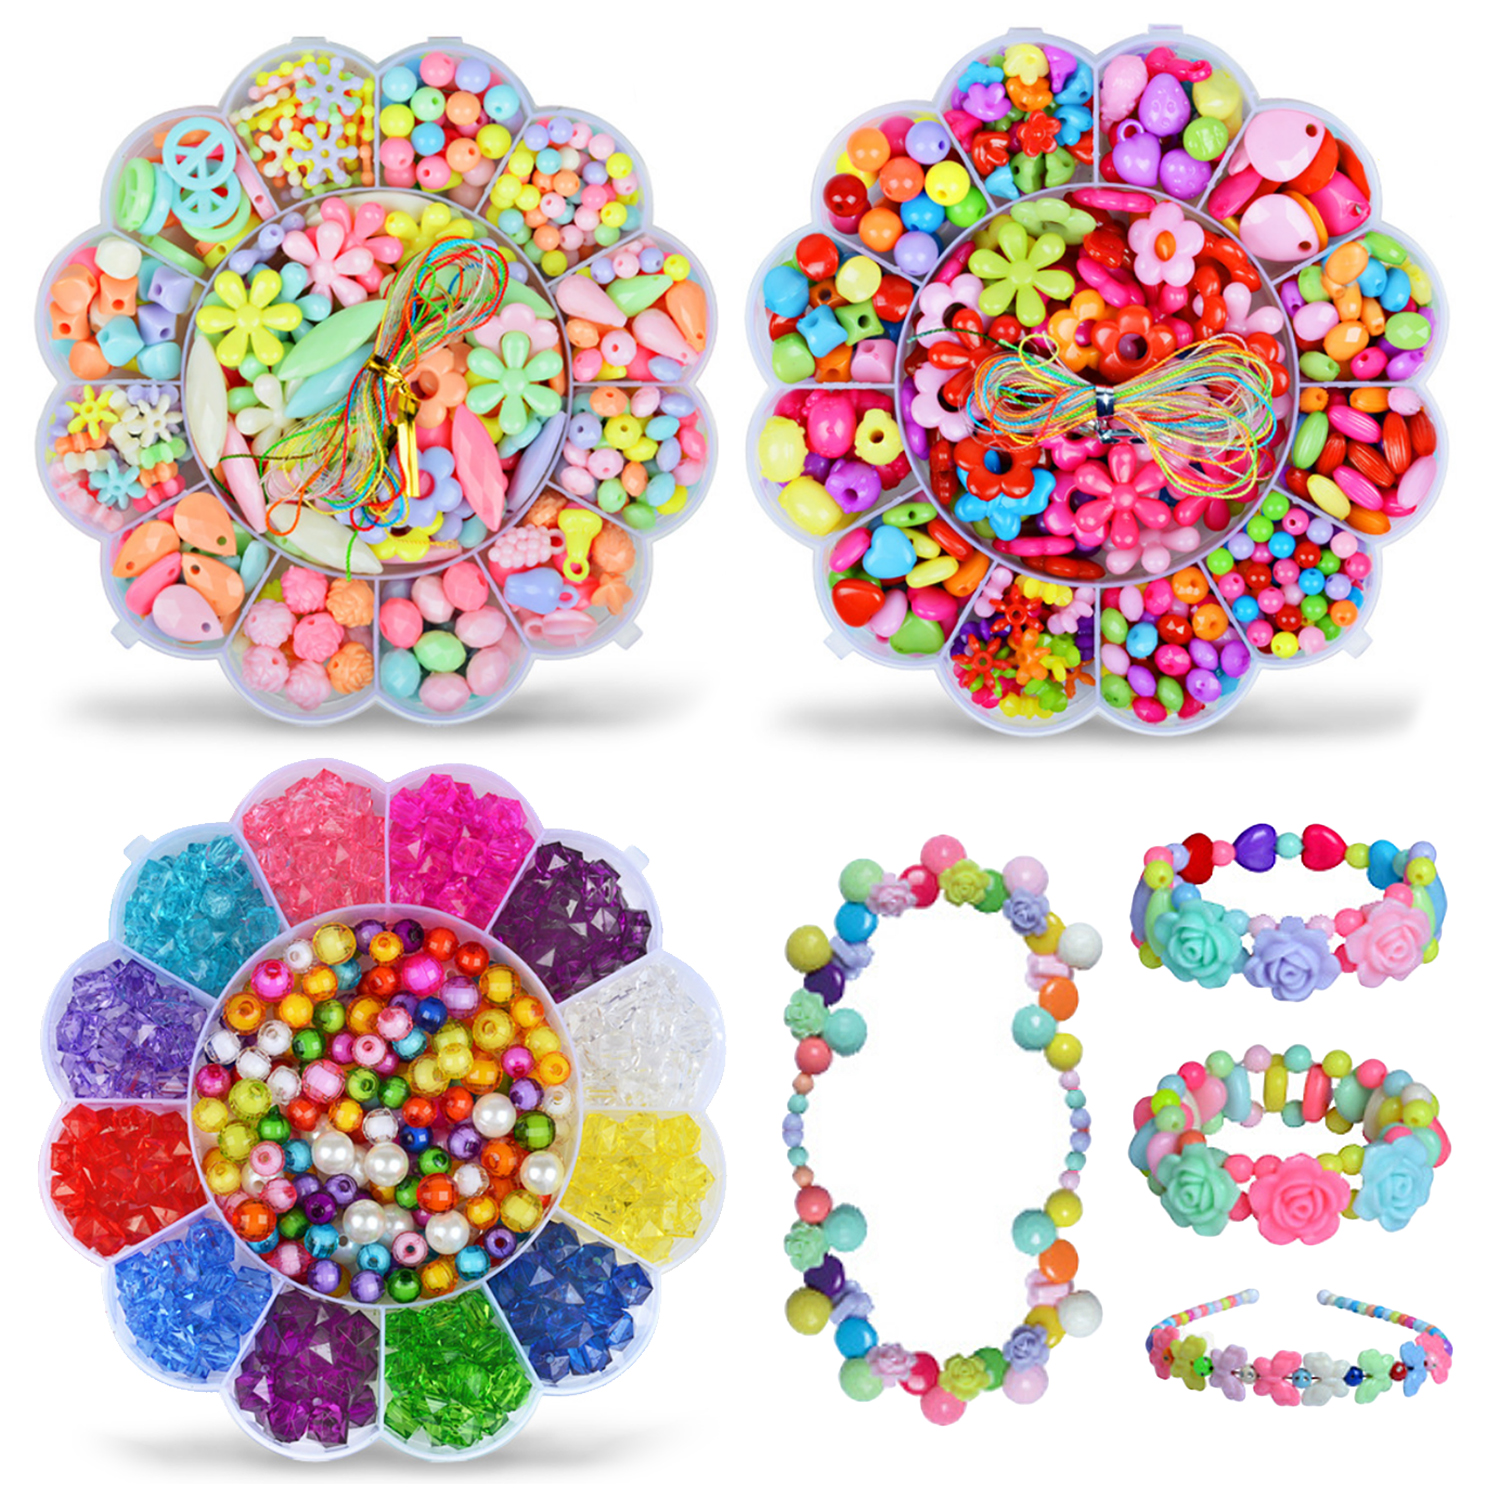 Besegad 350PCS Assorted Style Cute Colorful Loose DIY  Beads Toys For Kids Children Bracelet Necklace Making Jewelry DIY Crafts